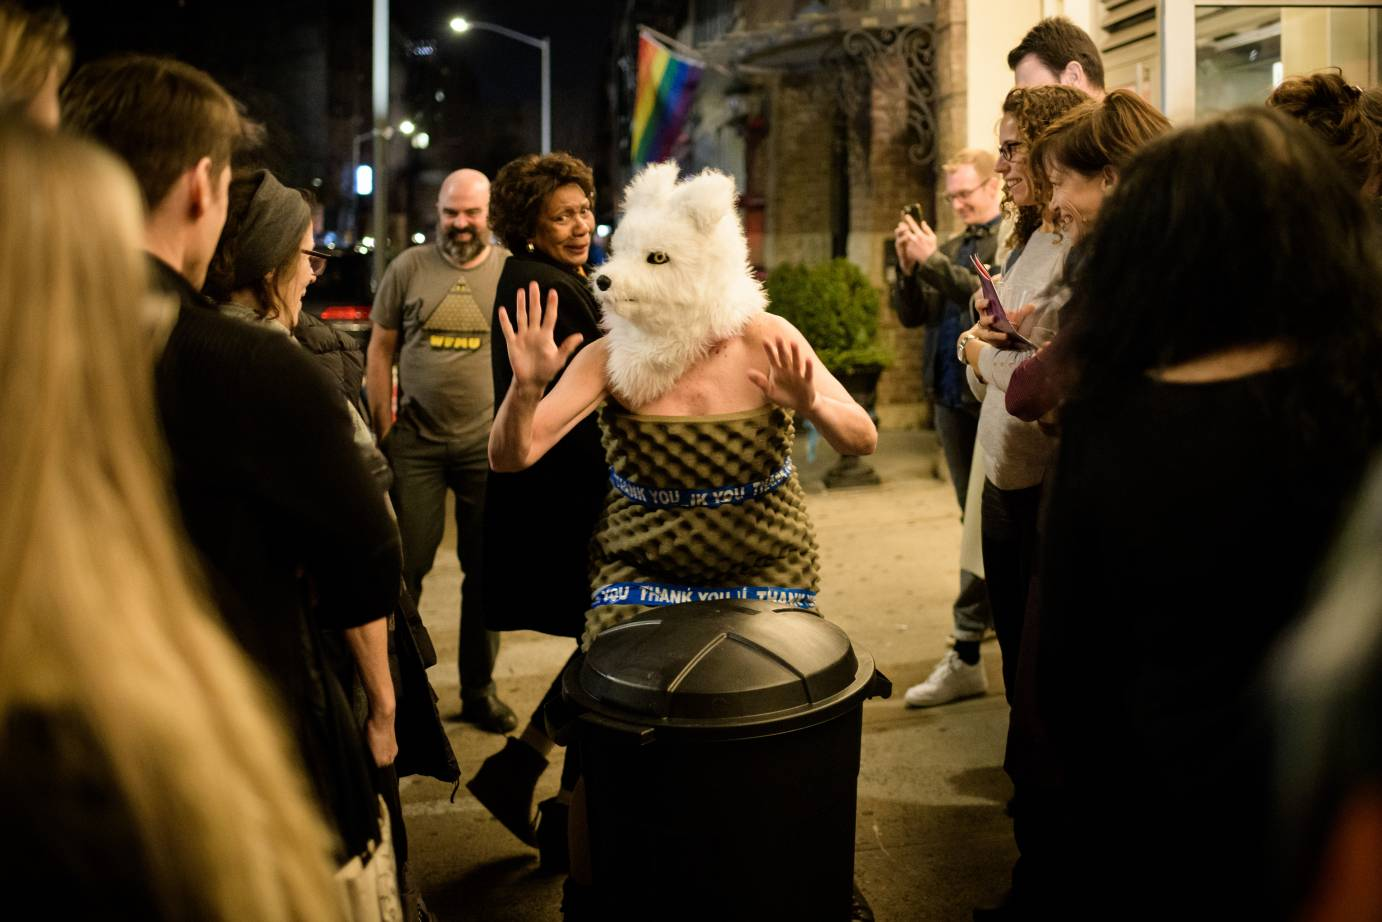 Woman in wolf head surprises crowd outside theater